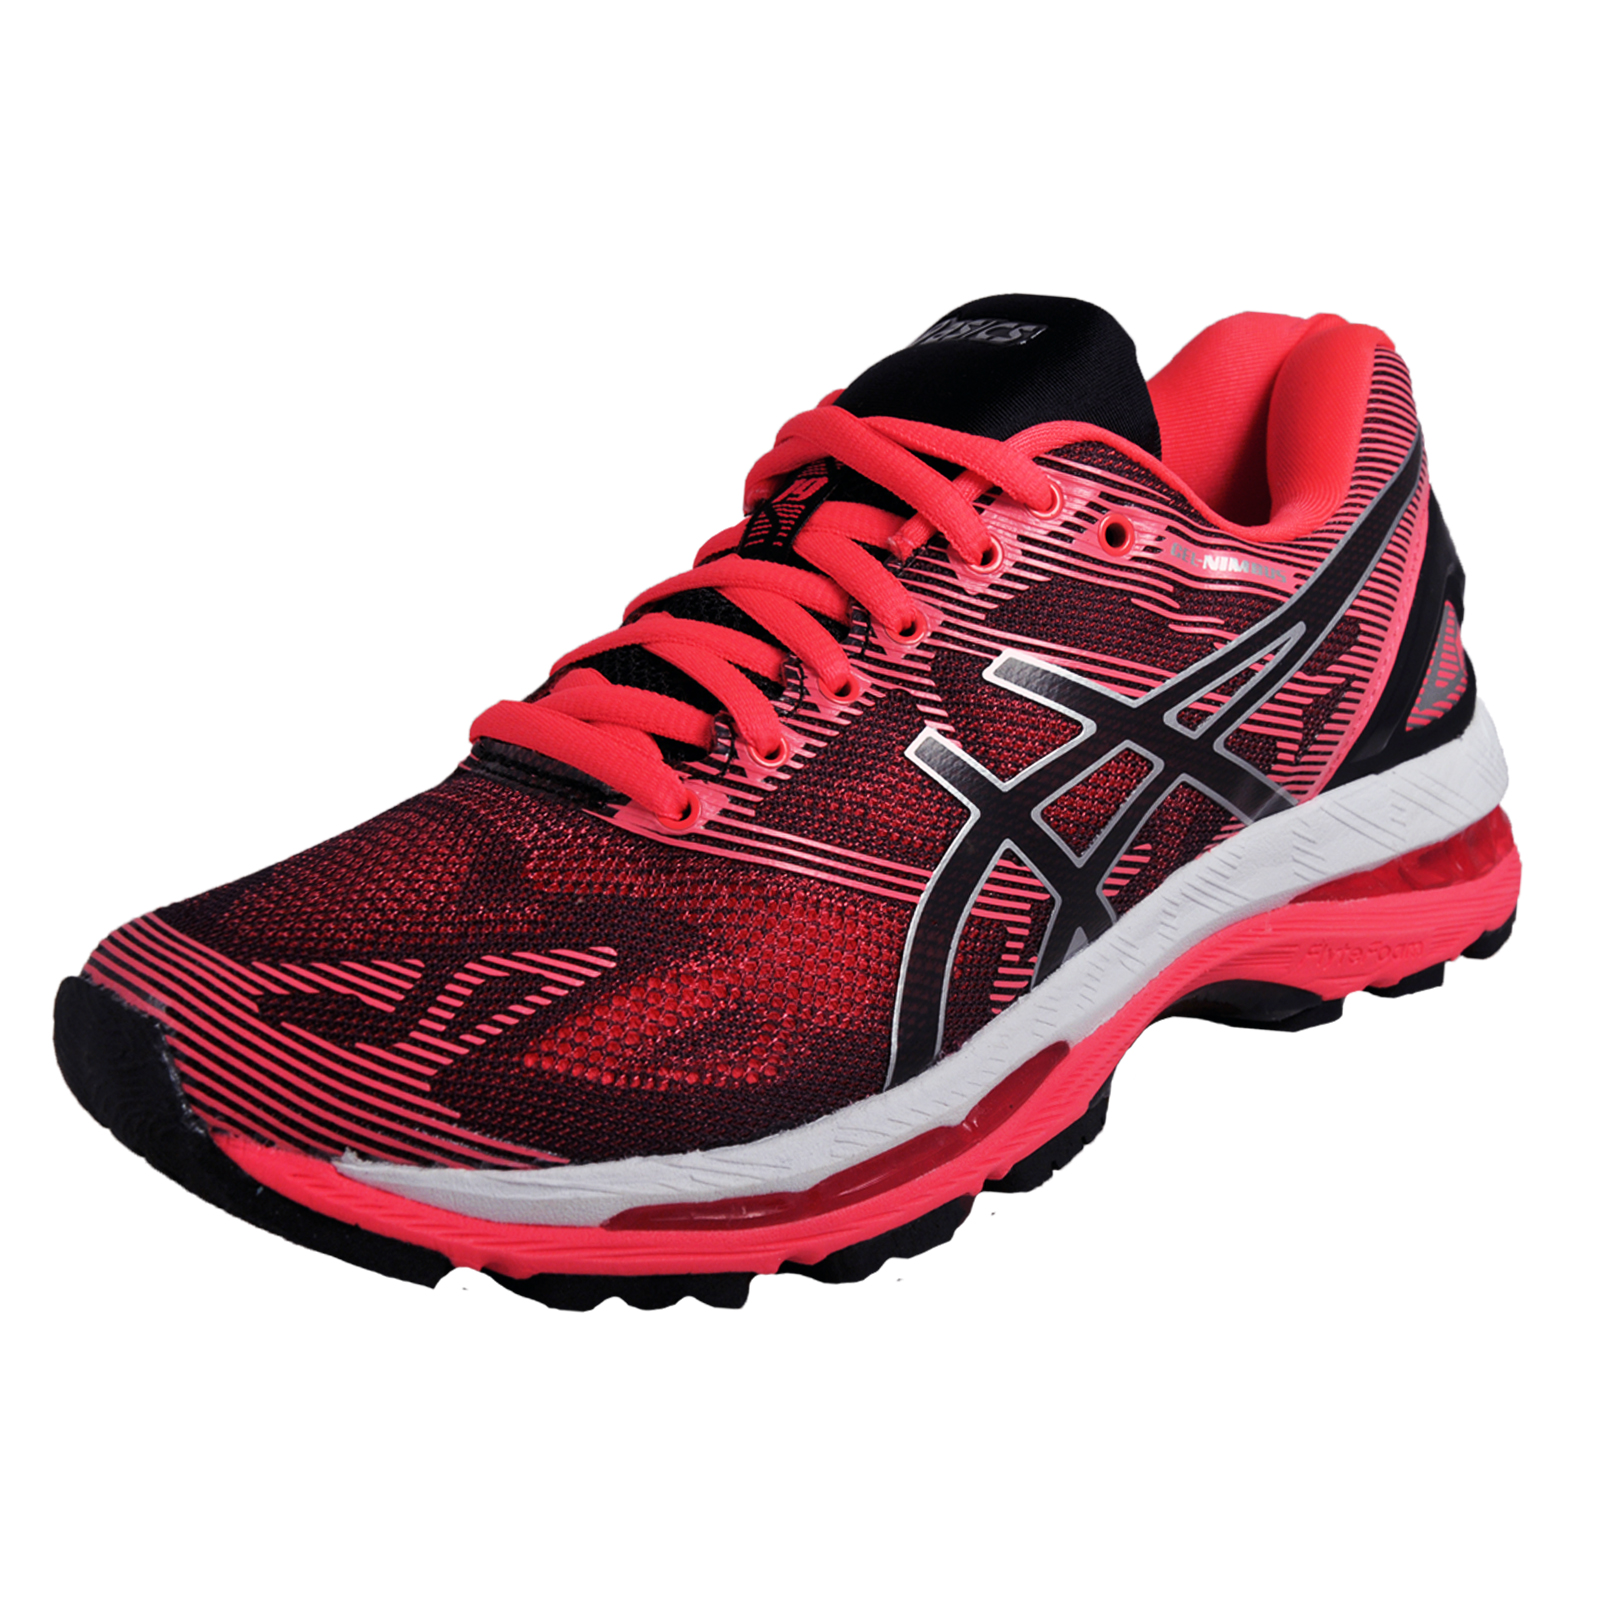 Asics Ladies Walking Shoes Uk